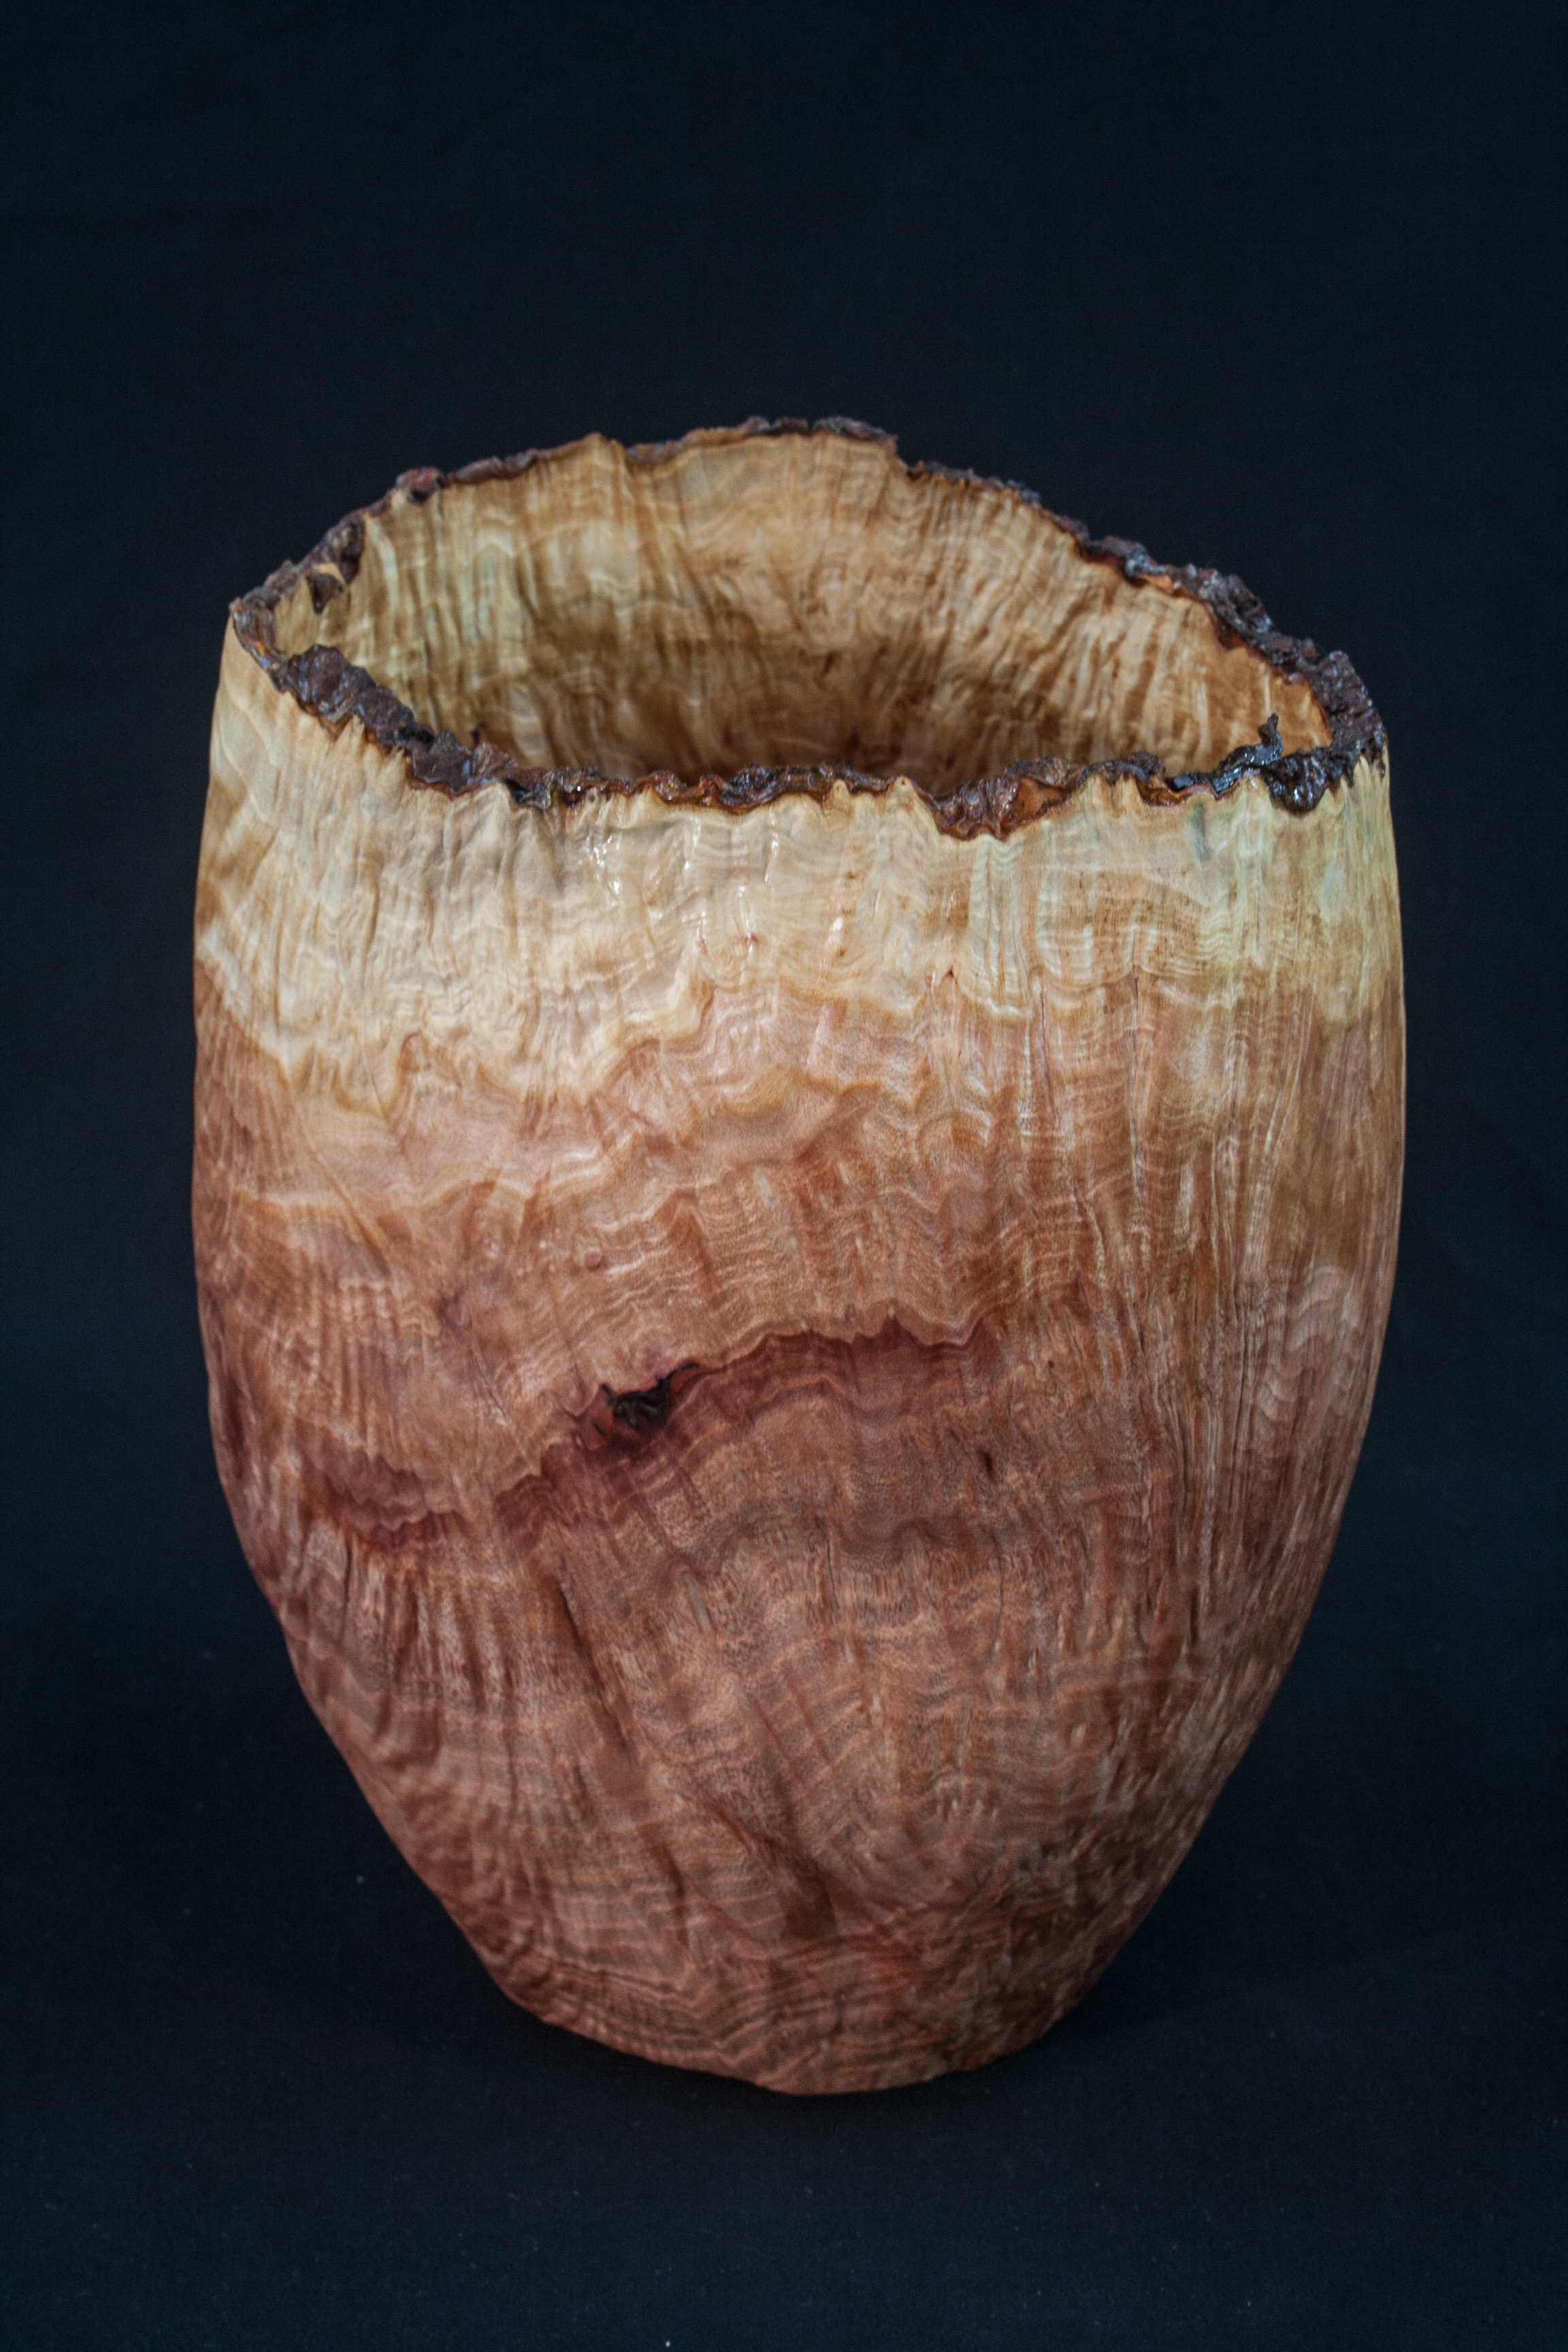 35 Madron Burl Natural Edge Distorted 7 x 9...........  $197........ SOLD